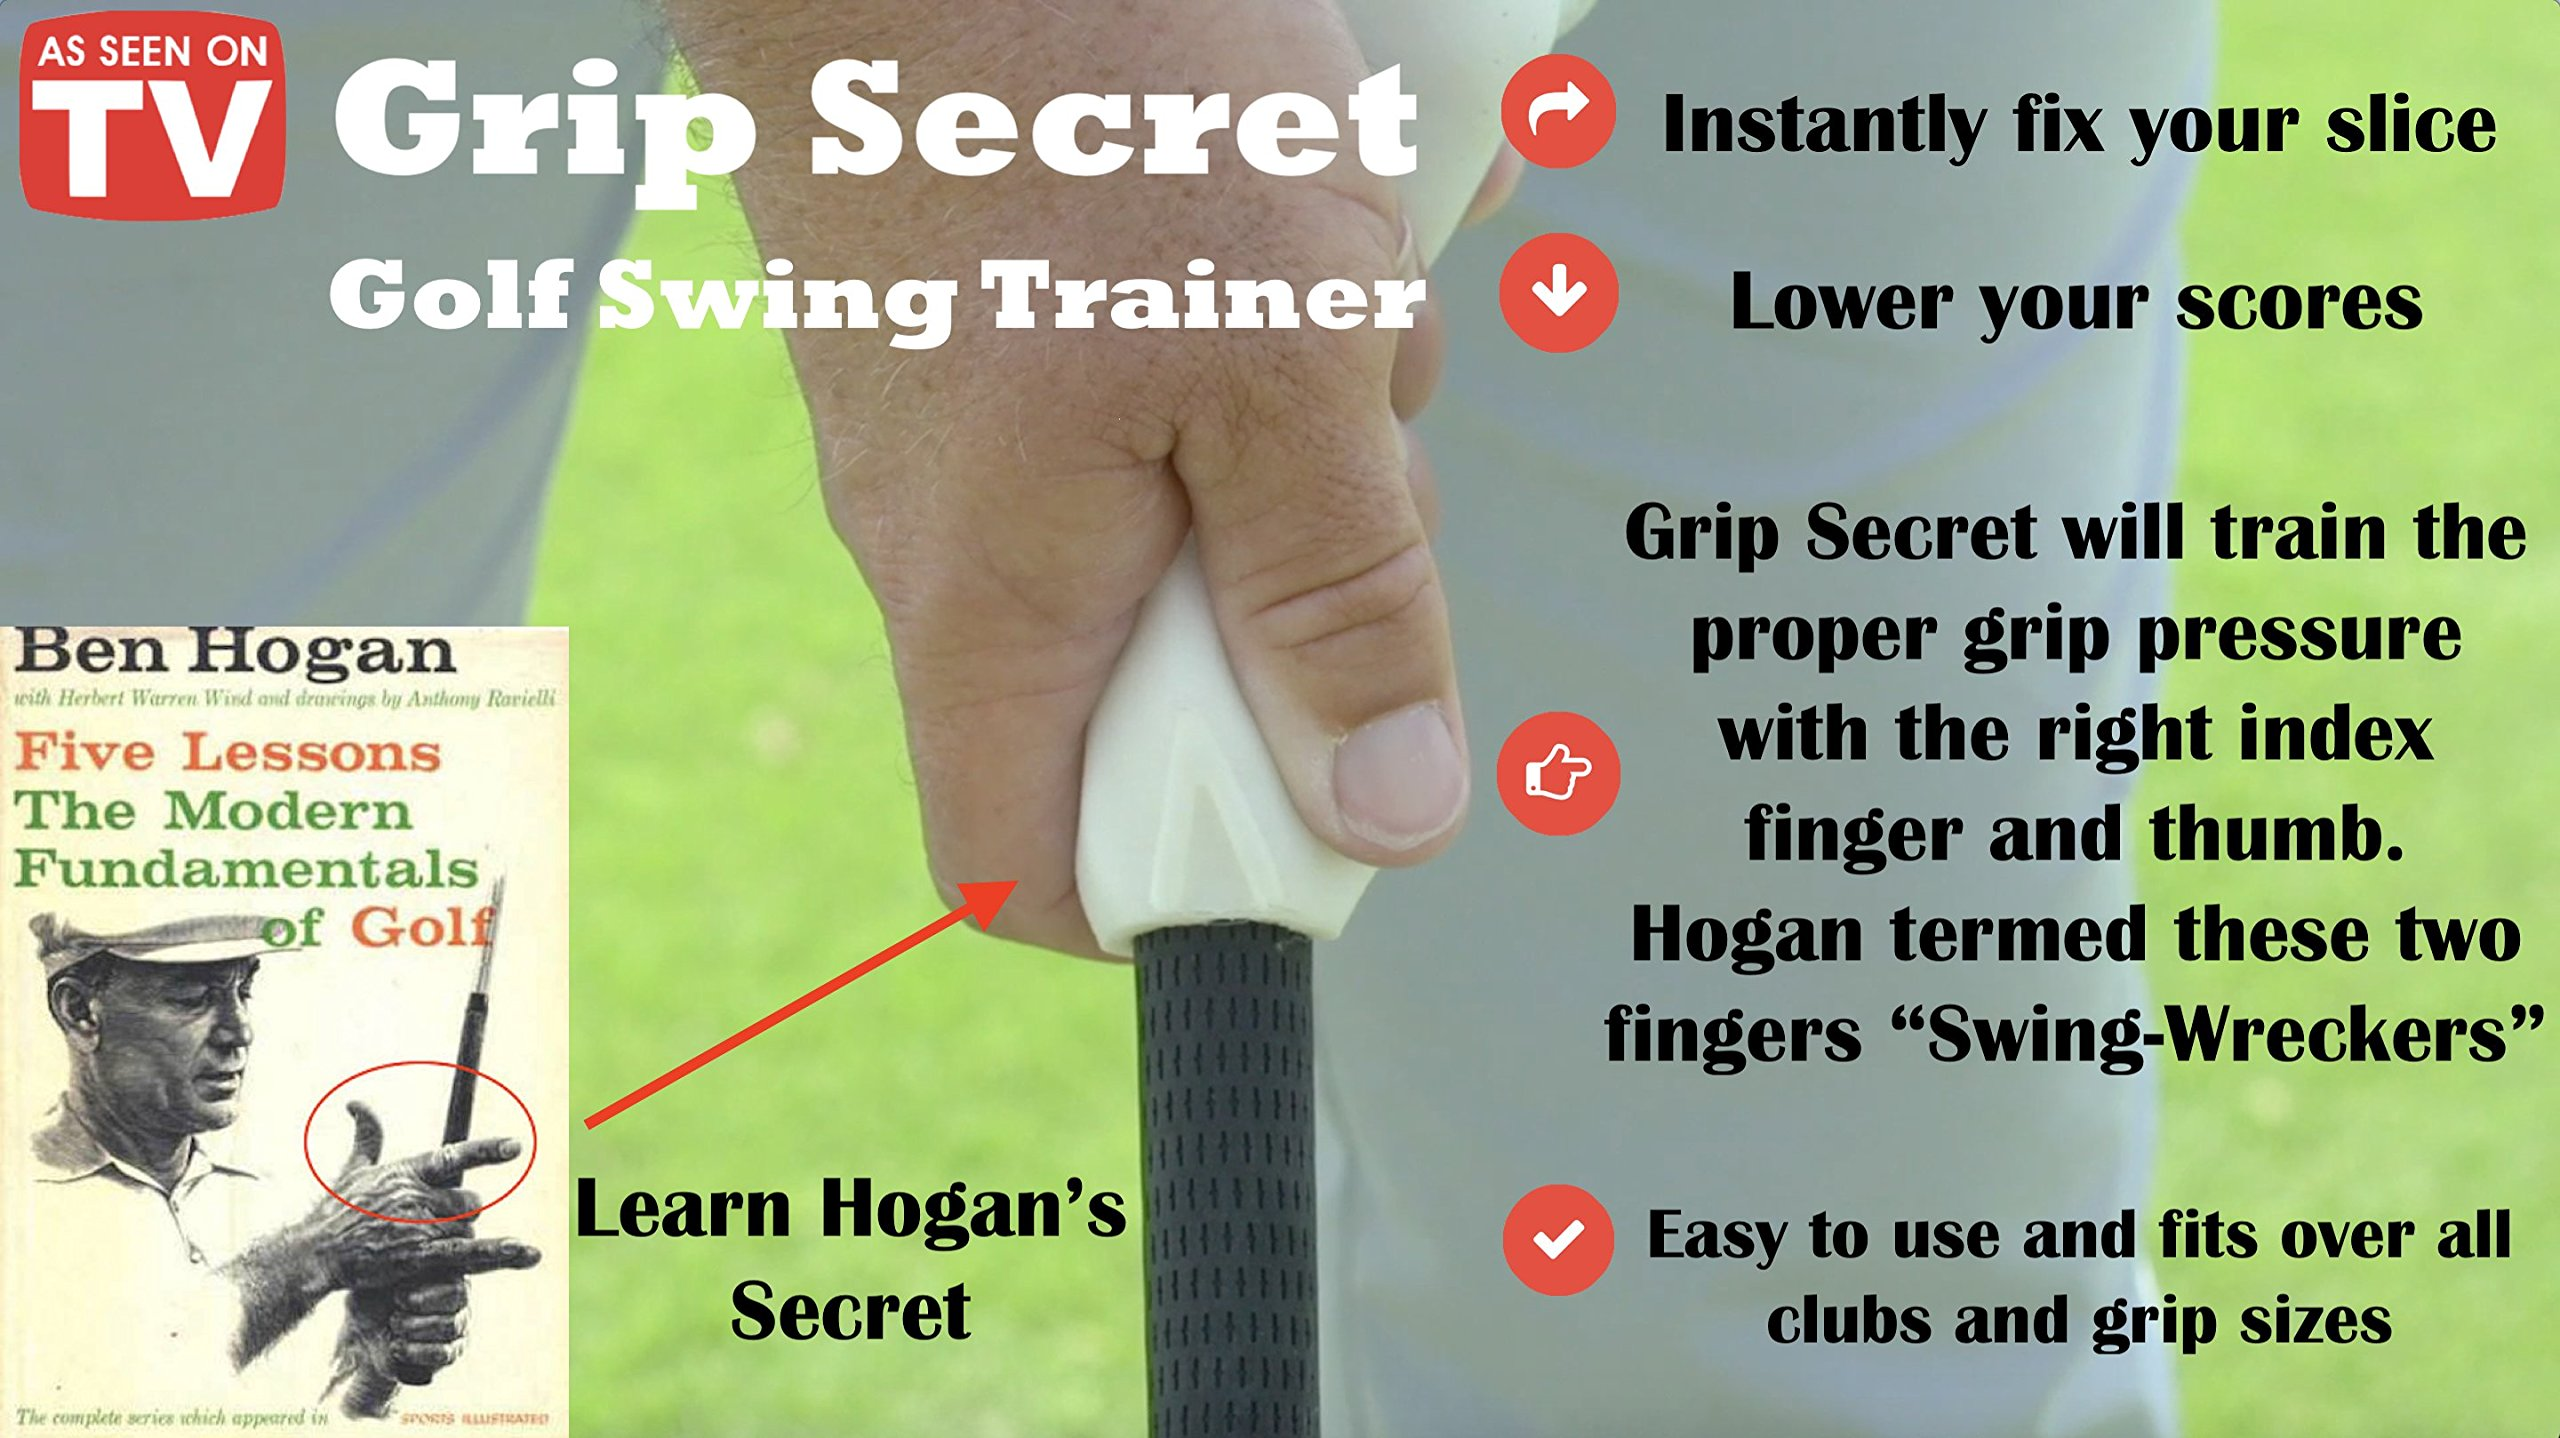 Grip Secret - Golf Swing Trainer/Golf Training Aid to Automatically Instantly Improve your Golf Game/Golf Swing